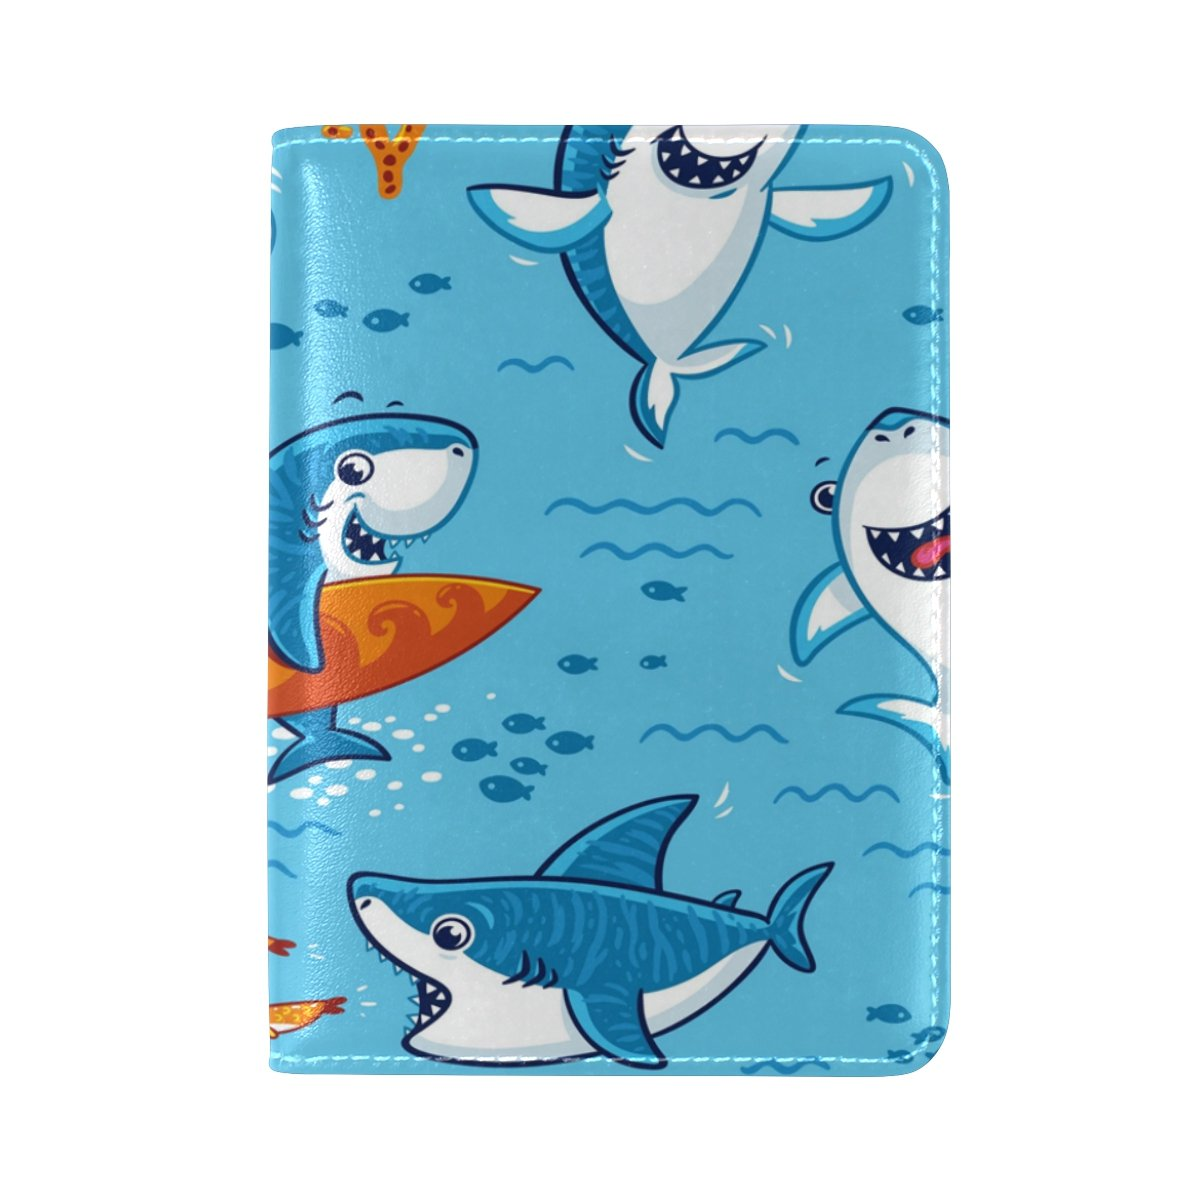 ALAZA Cute Cartoon Shark PU Leather Passport Holder Cover Case Travel One Pocket by ALAZA